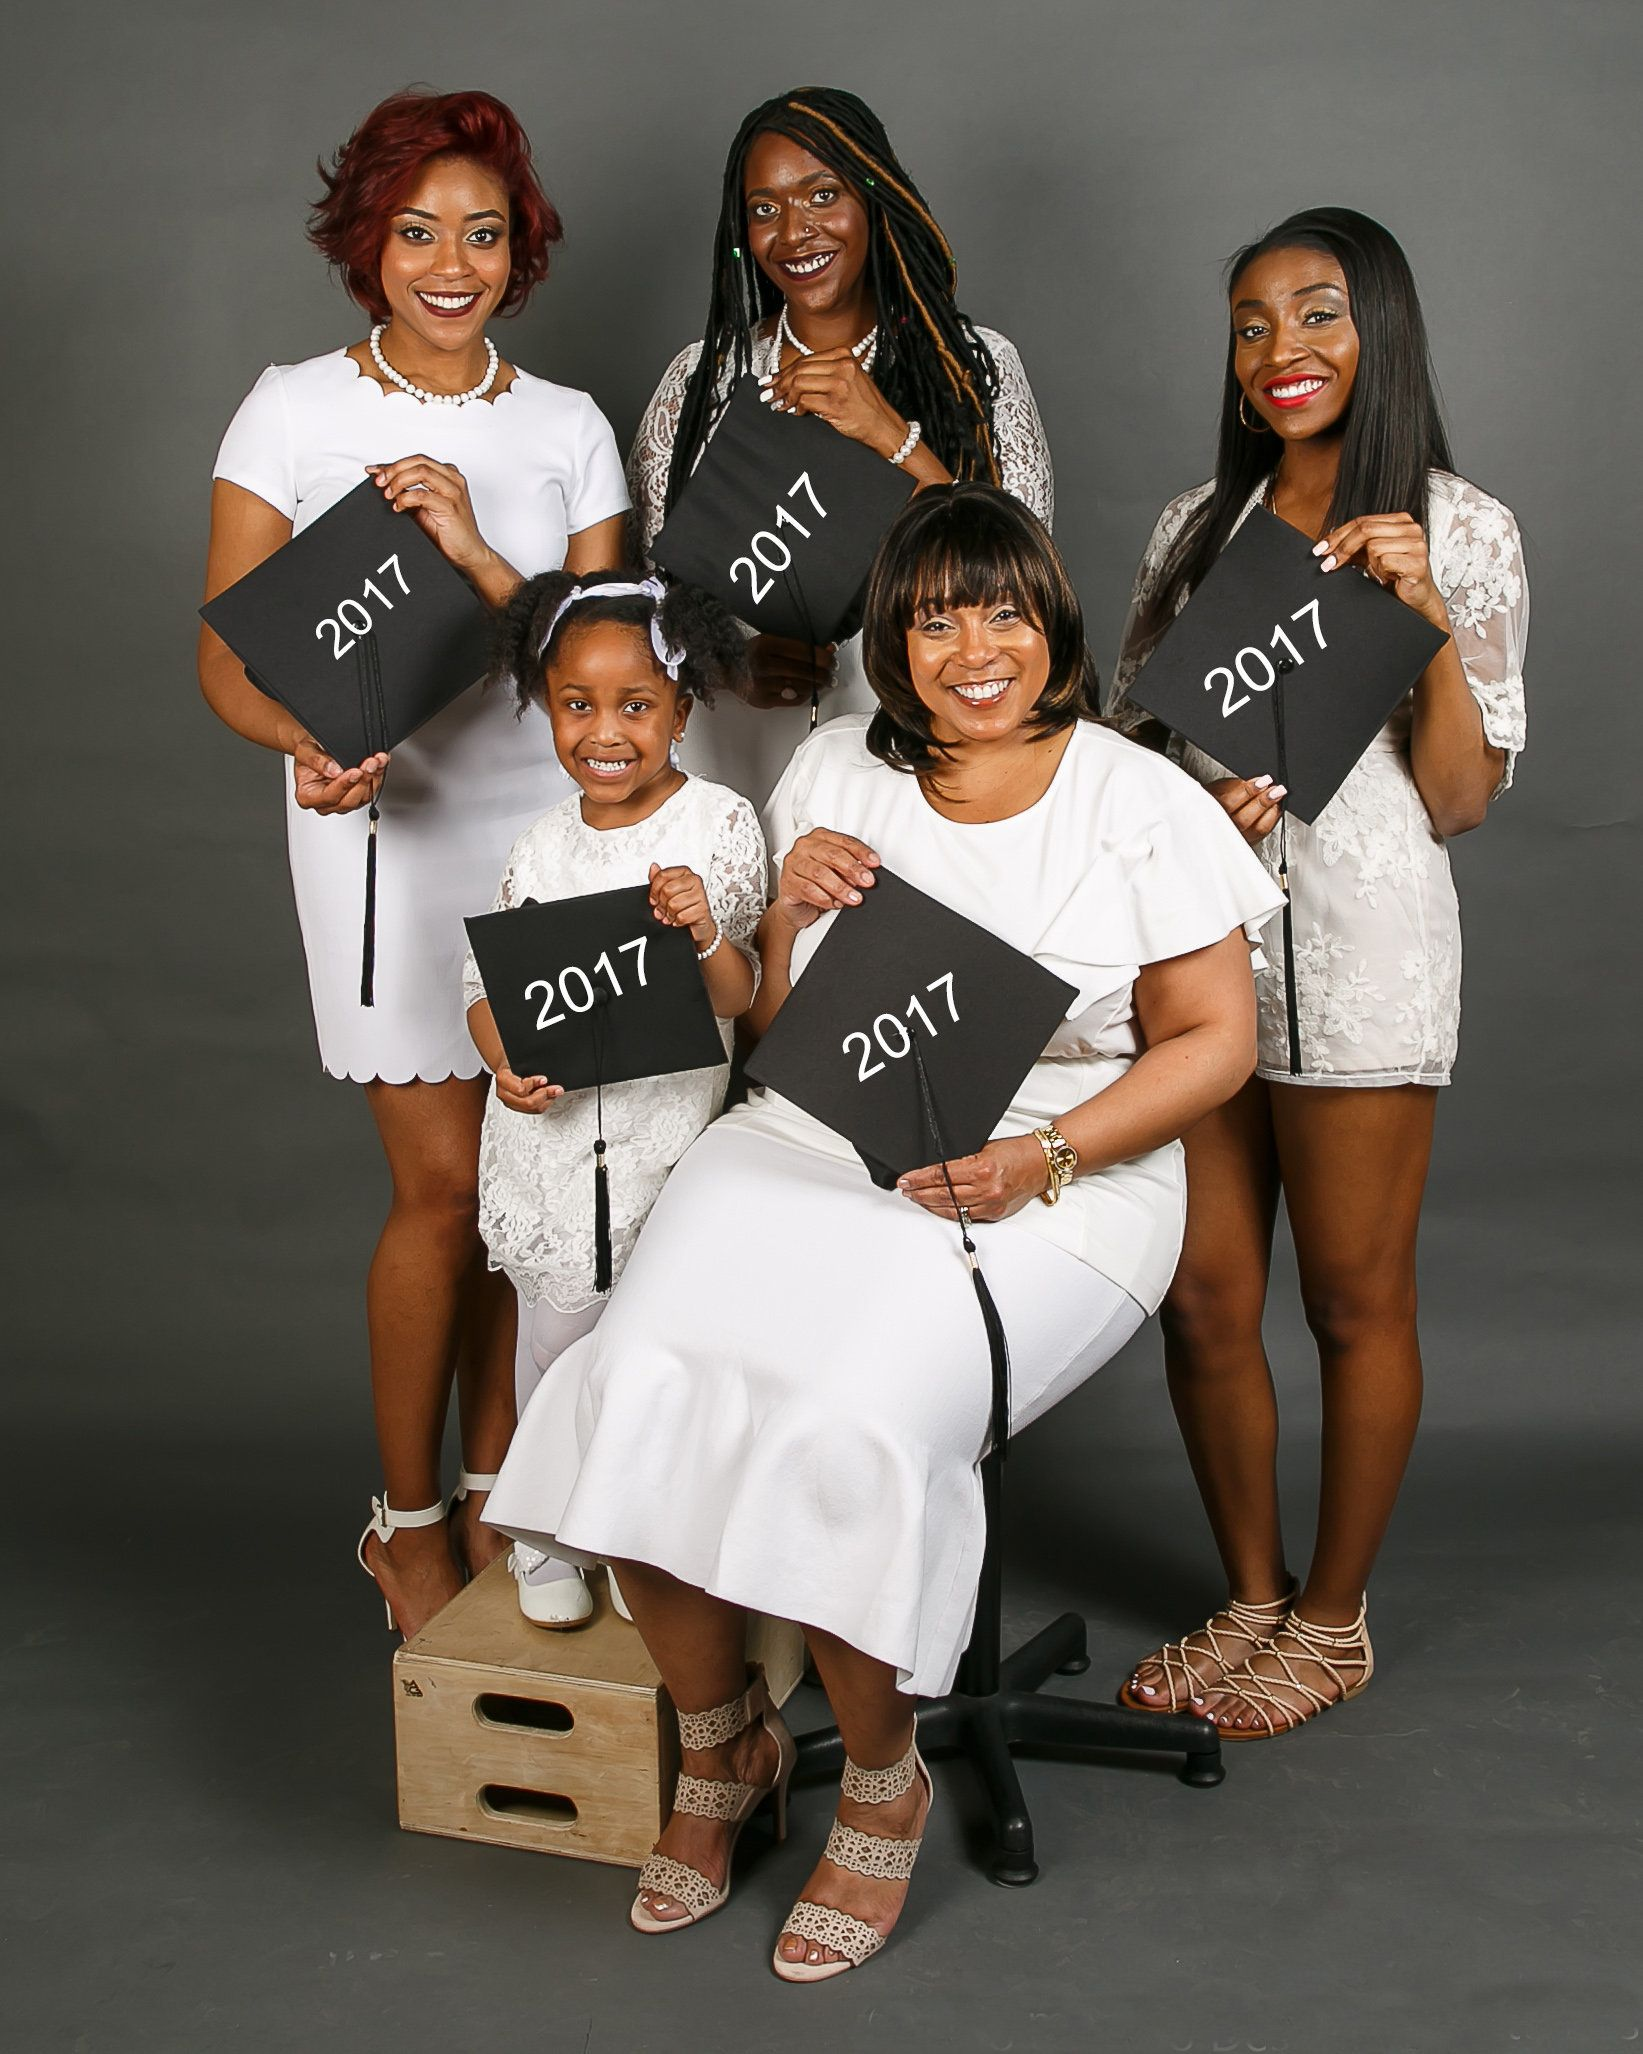 From left to right, Amari, Paris and Jade stand behind Flennoy and her granddaughter.